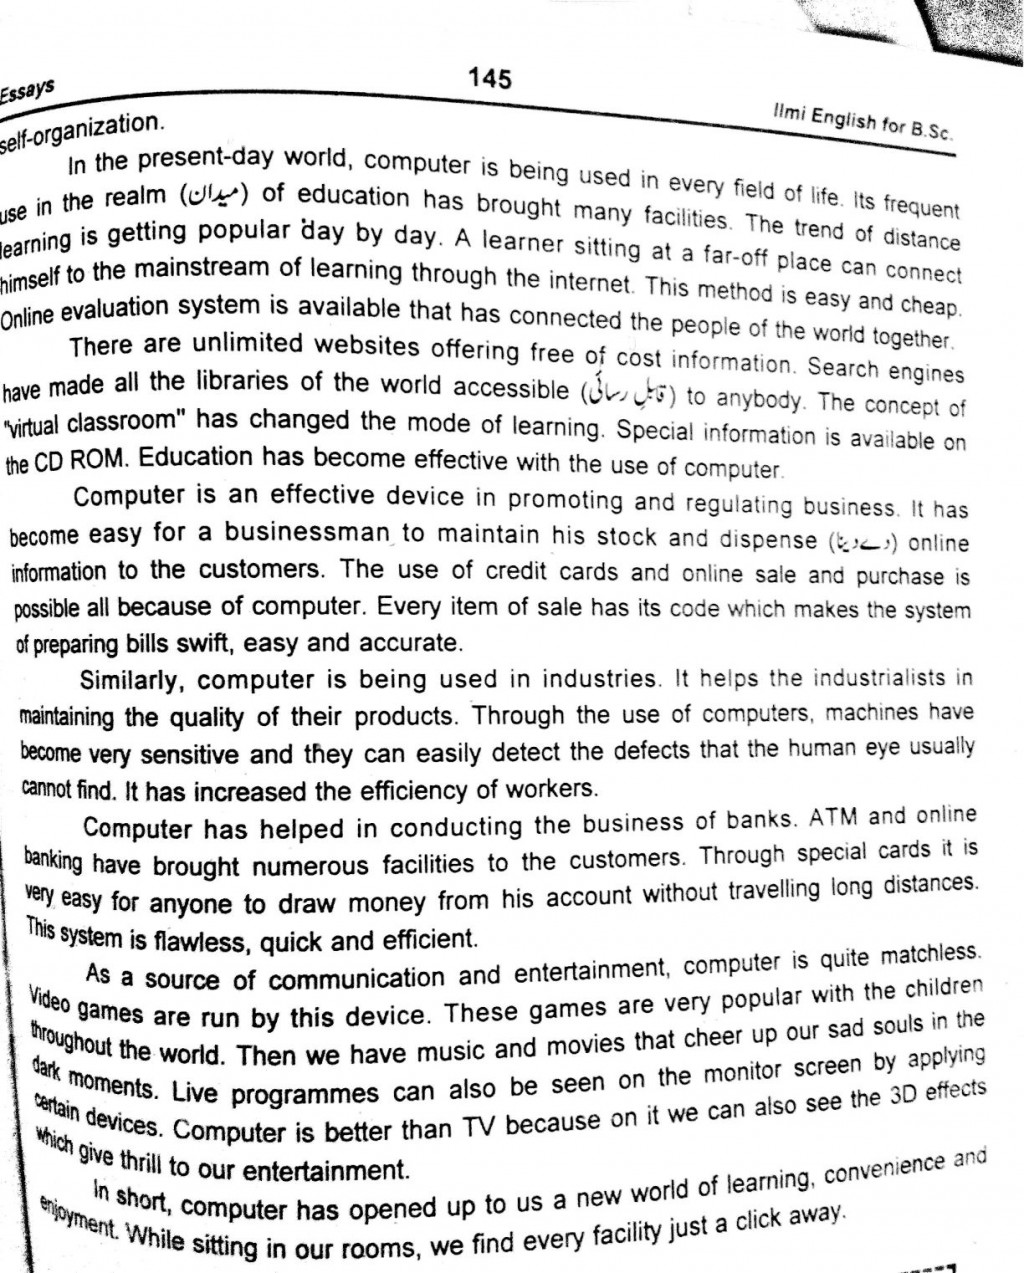 009 Tv Addiction Essay For Bsc Example Beautiful Large